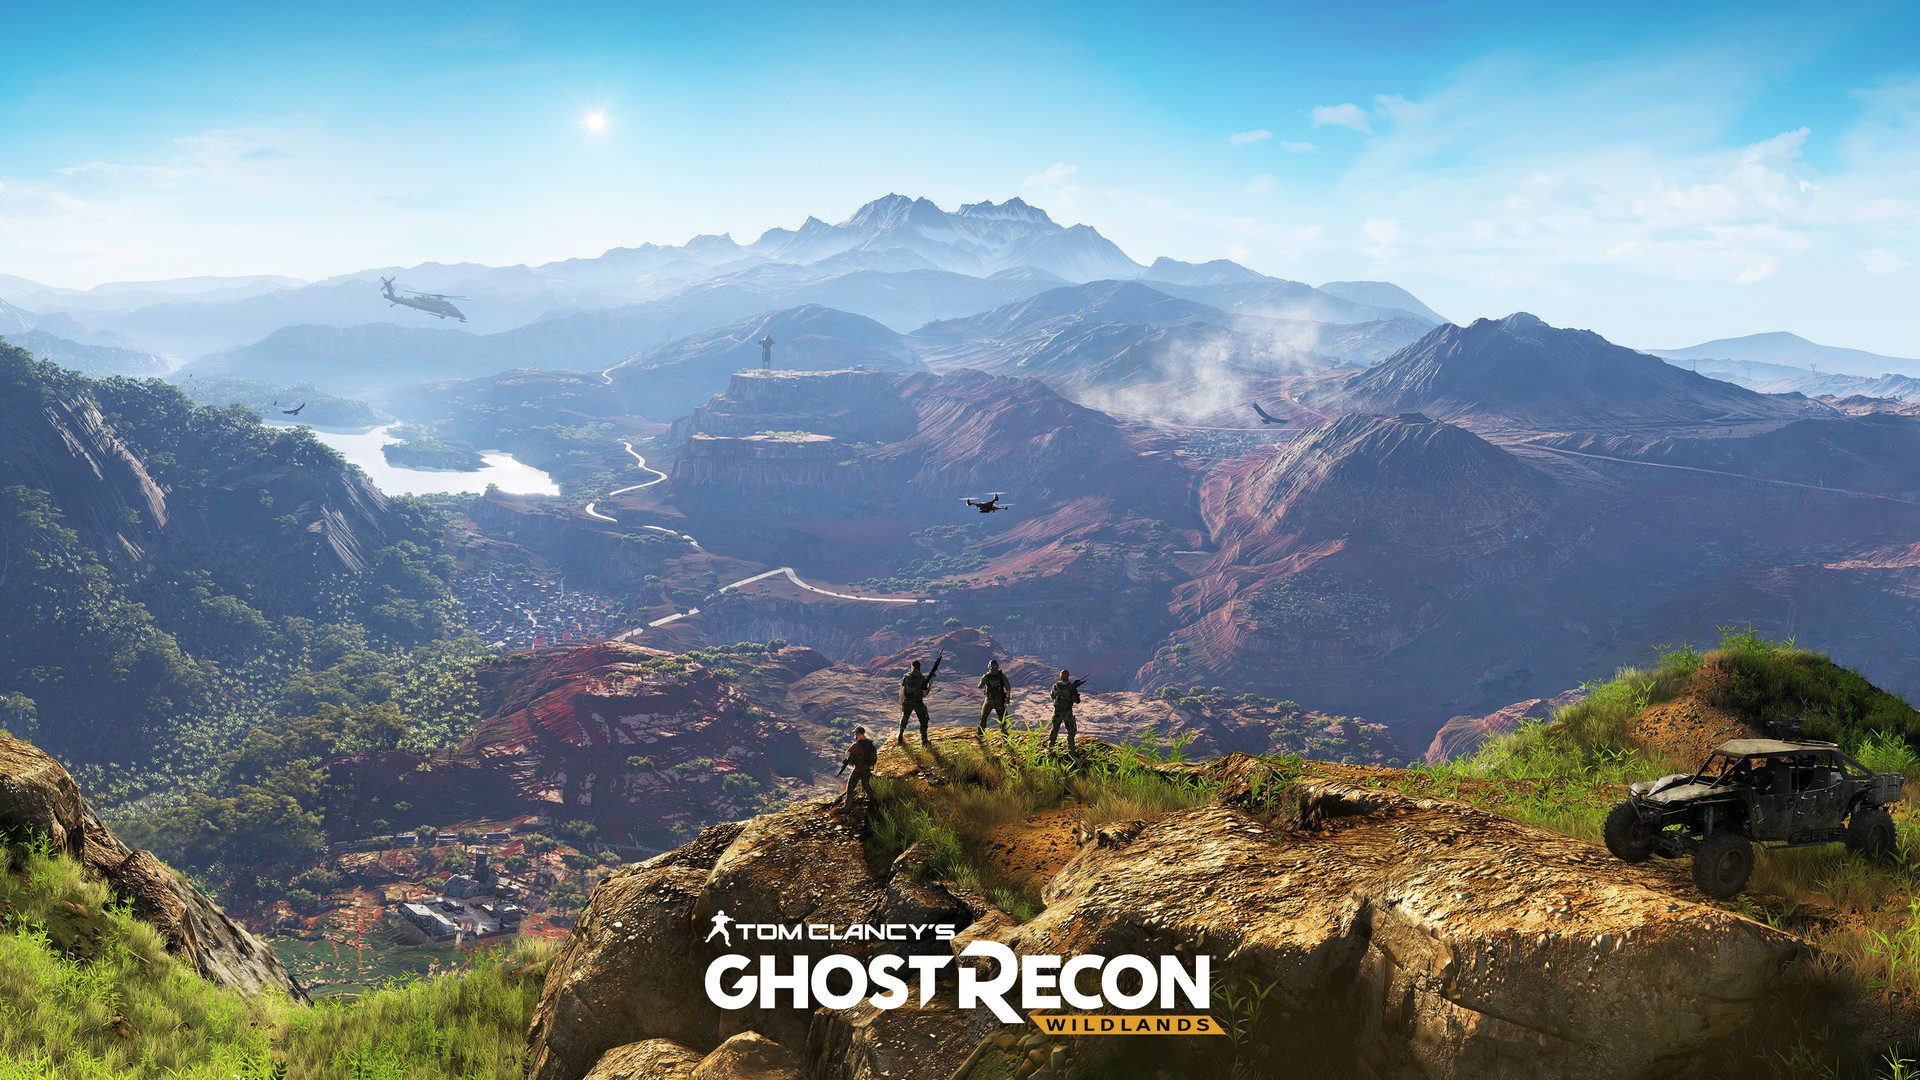 Ubisoft And Amazon Announce Collaboration To Create Tom Clancy S